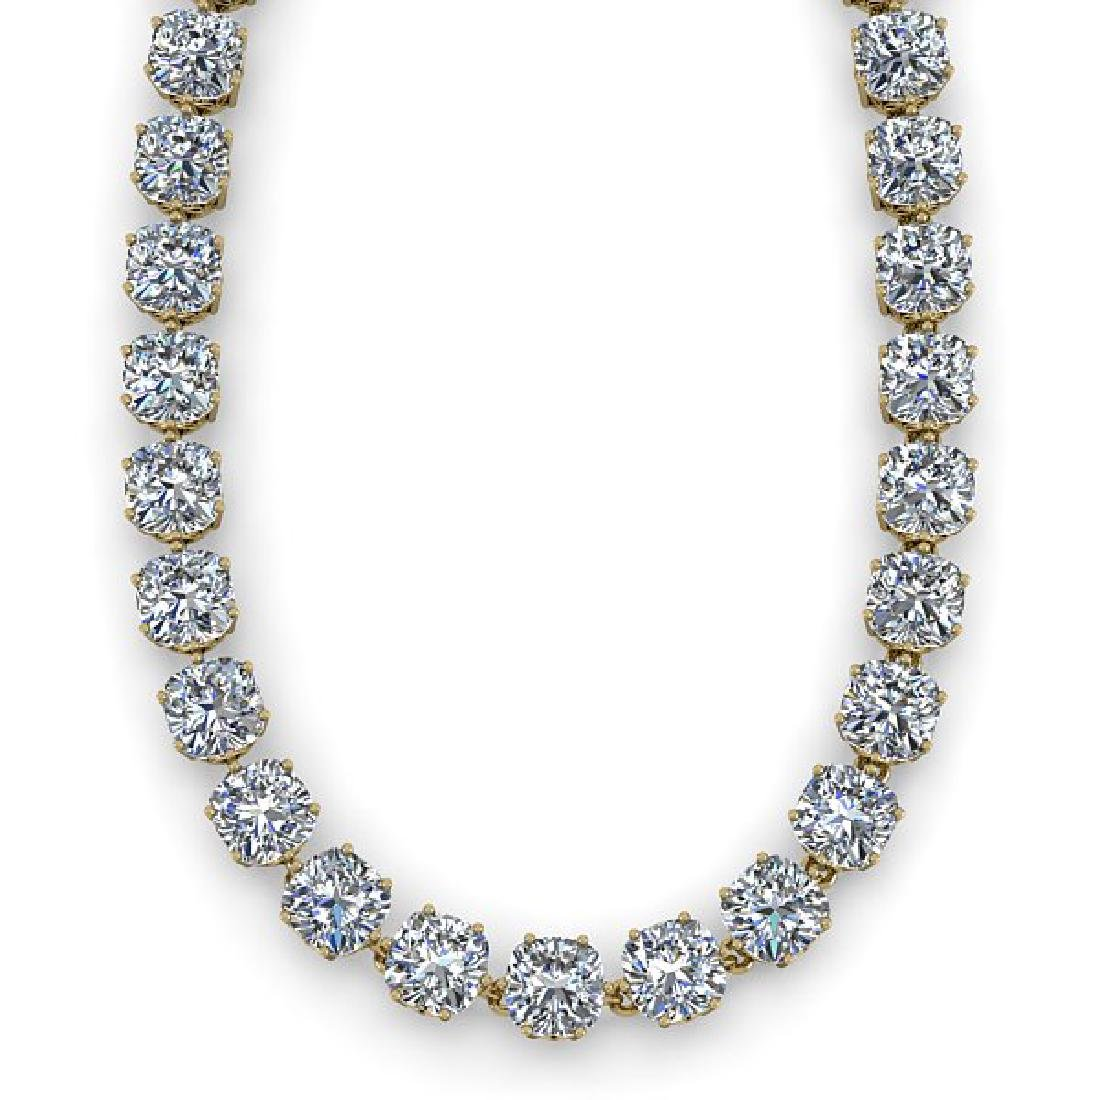 34 CTW Cushion Cut SI Diamond Necklace 18K Yellow Gold